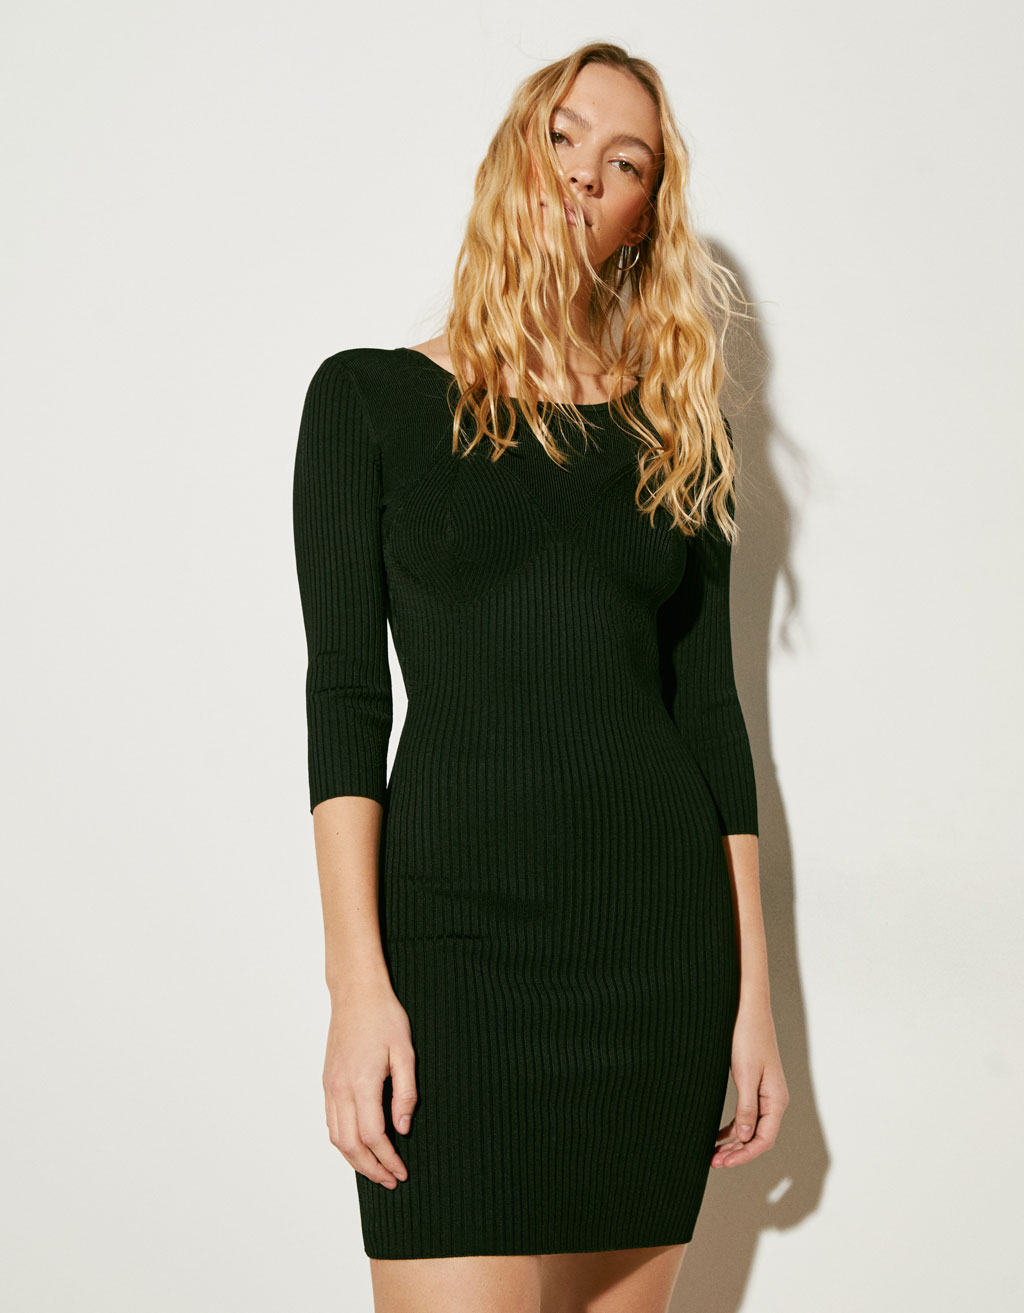 Knit dress with back opening